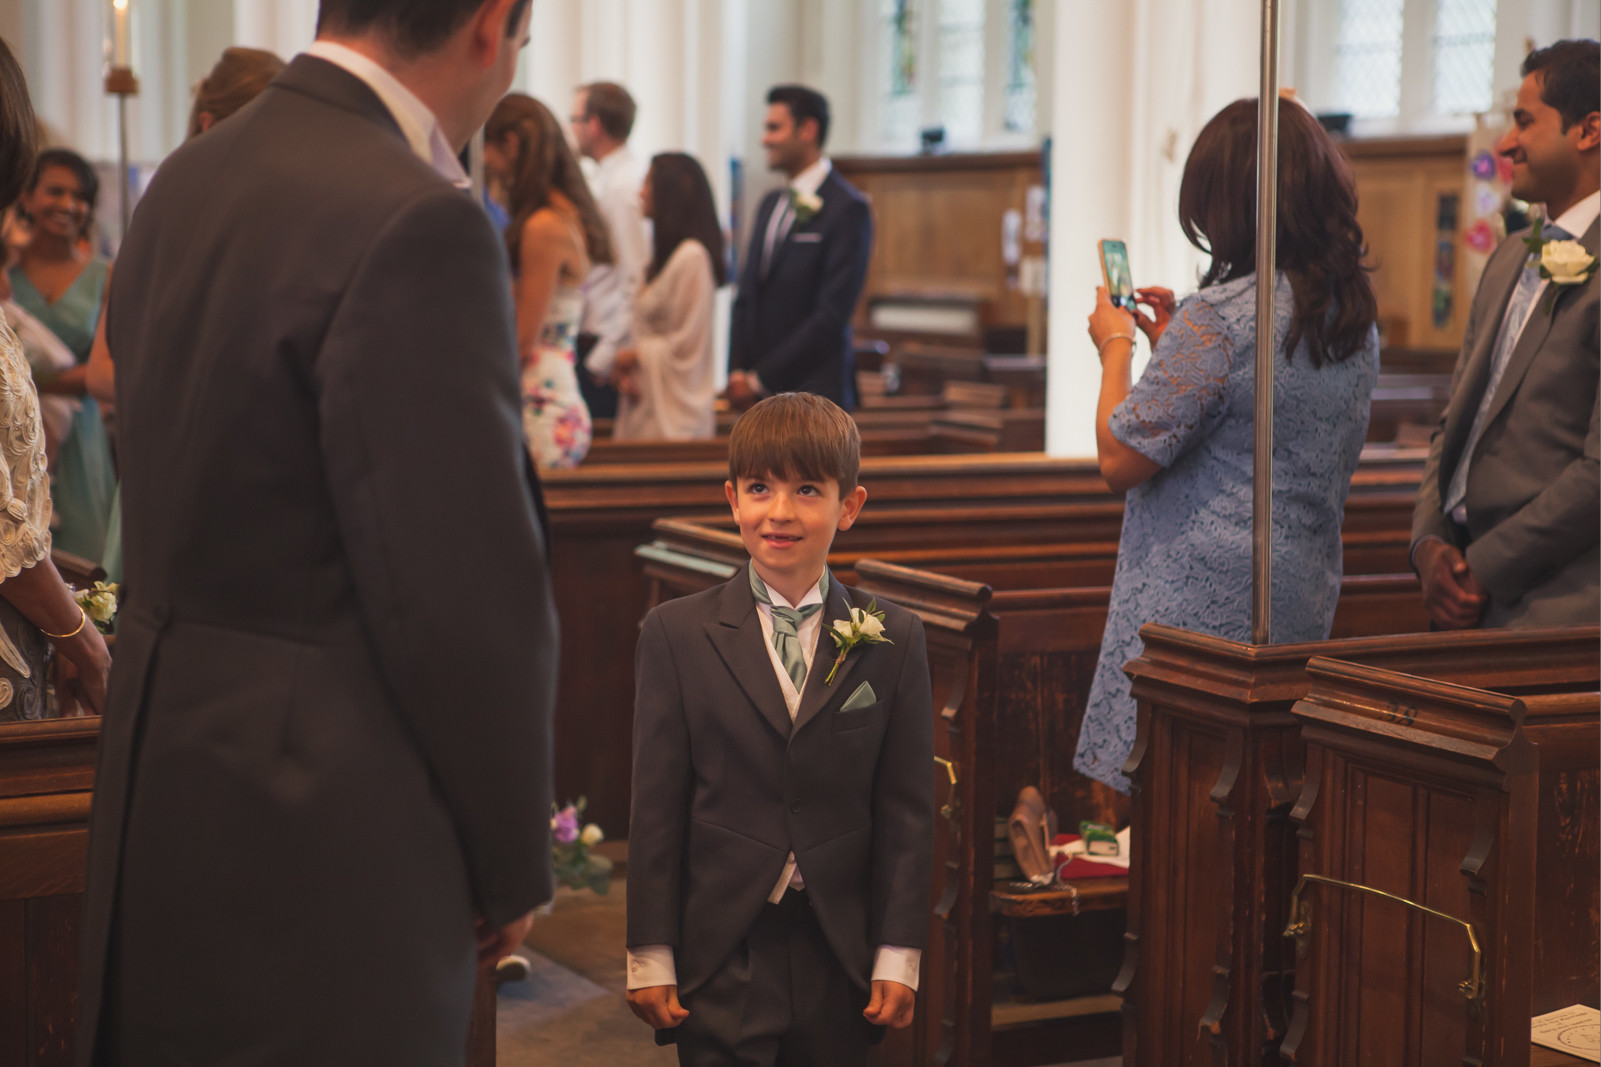 bridebook.co.uk little boy at a wedding